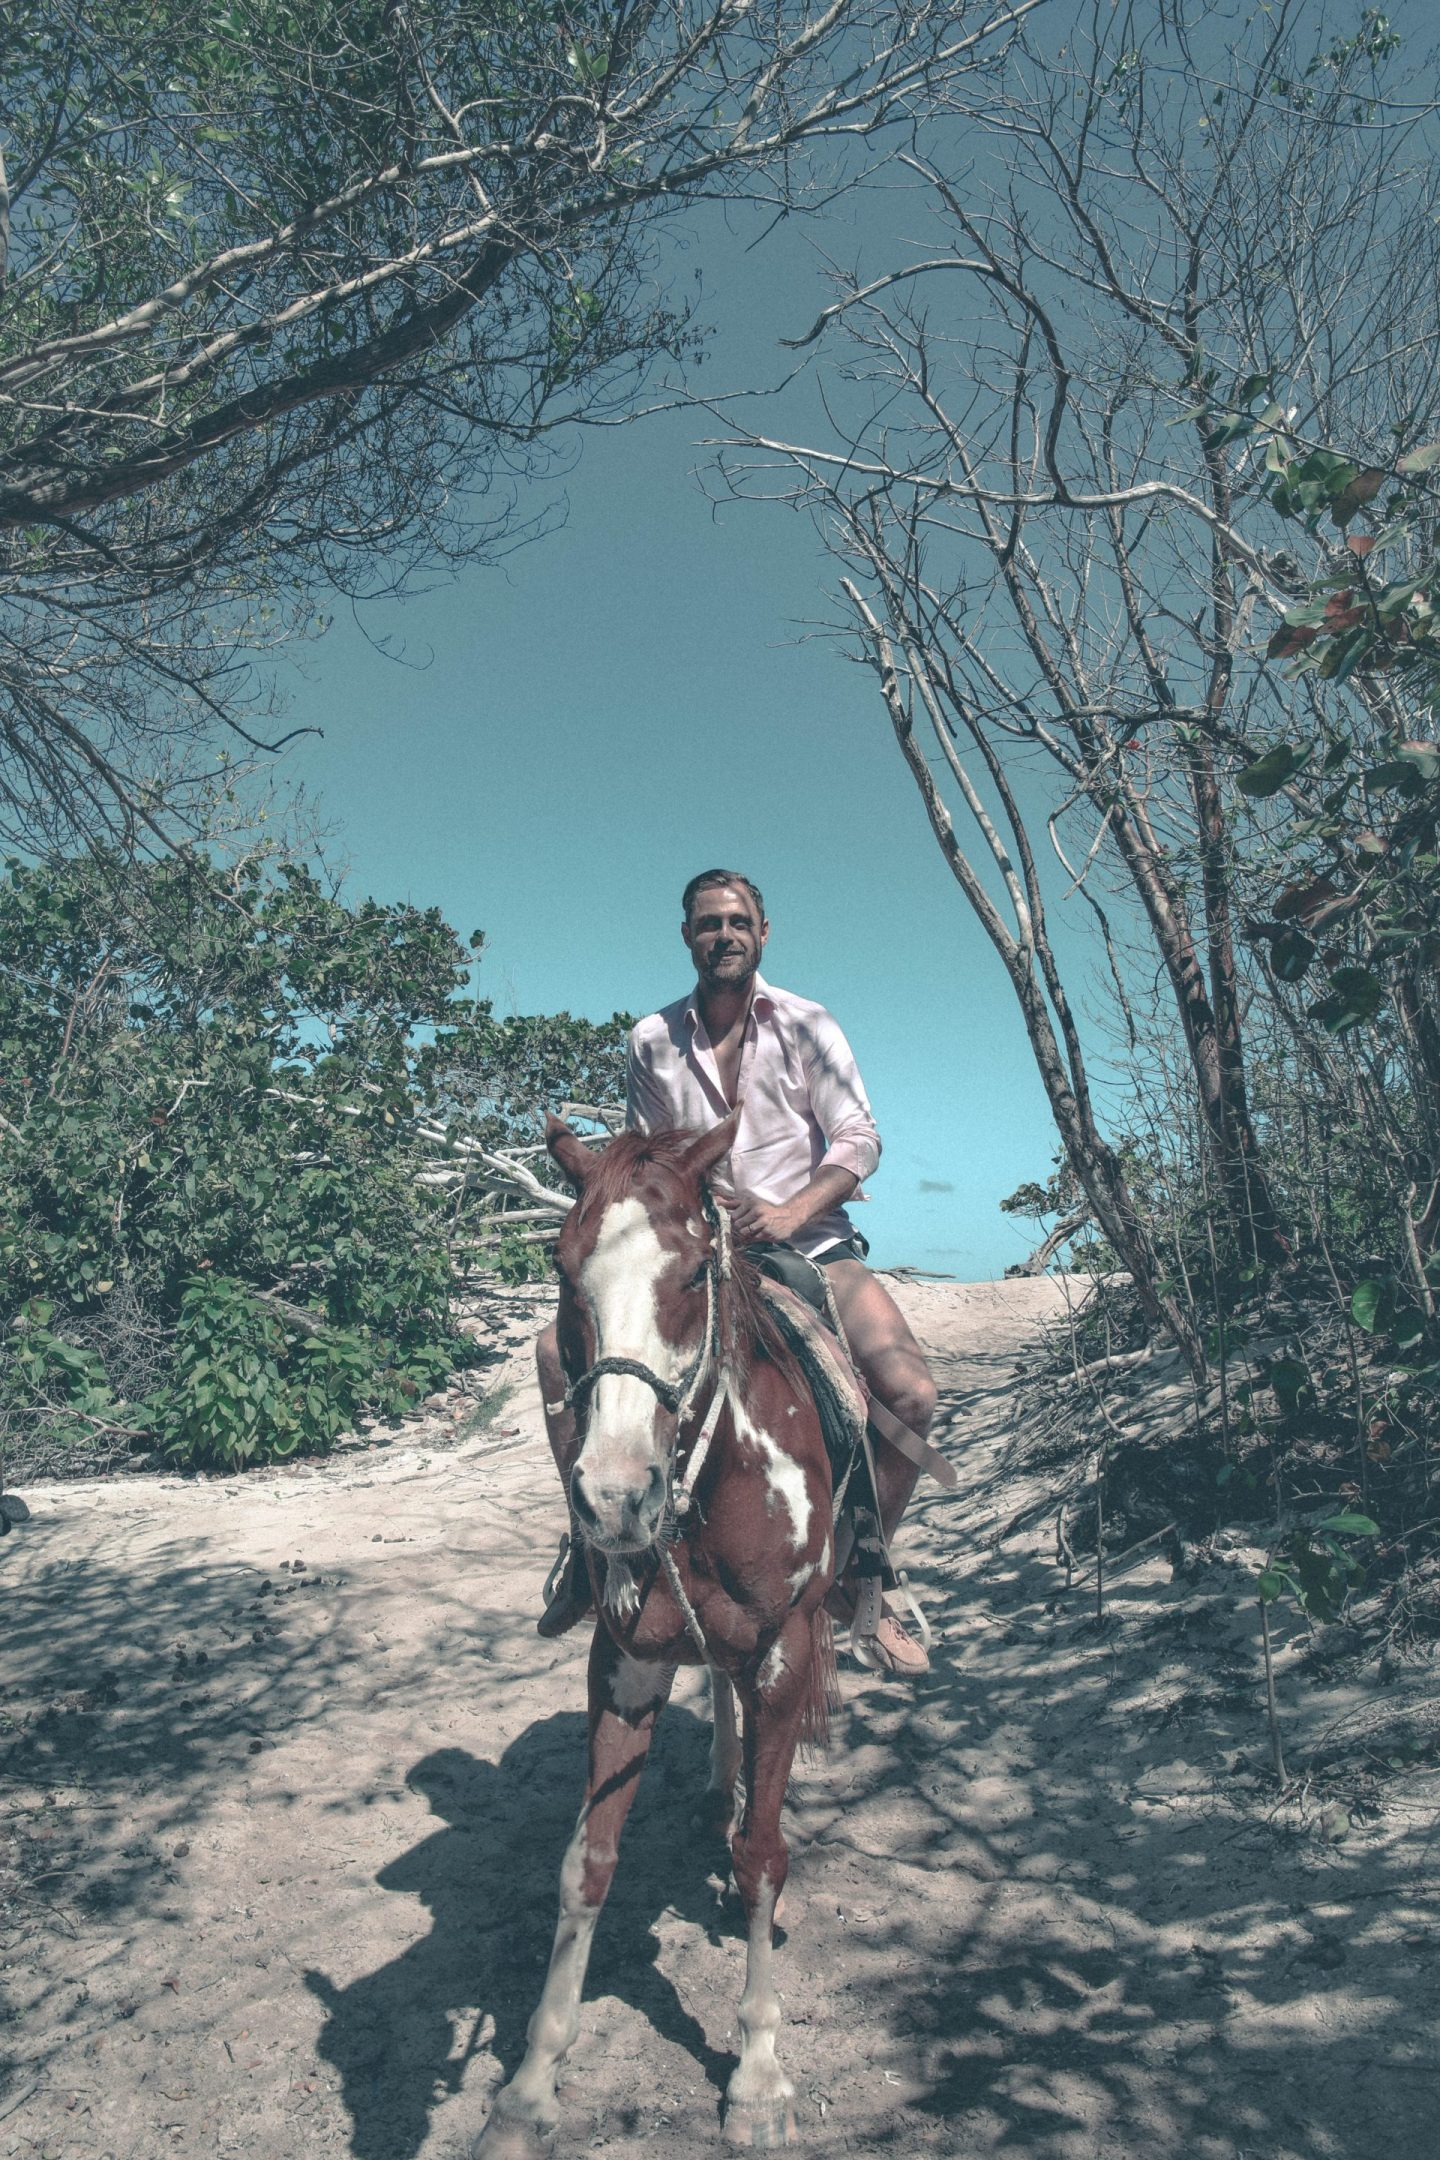 Horse Ride Beach Cayman Island